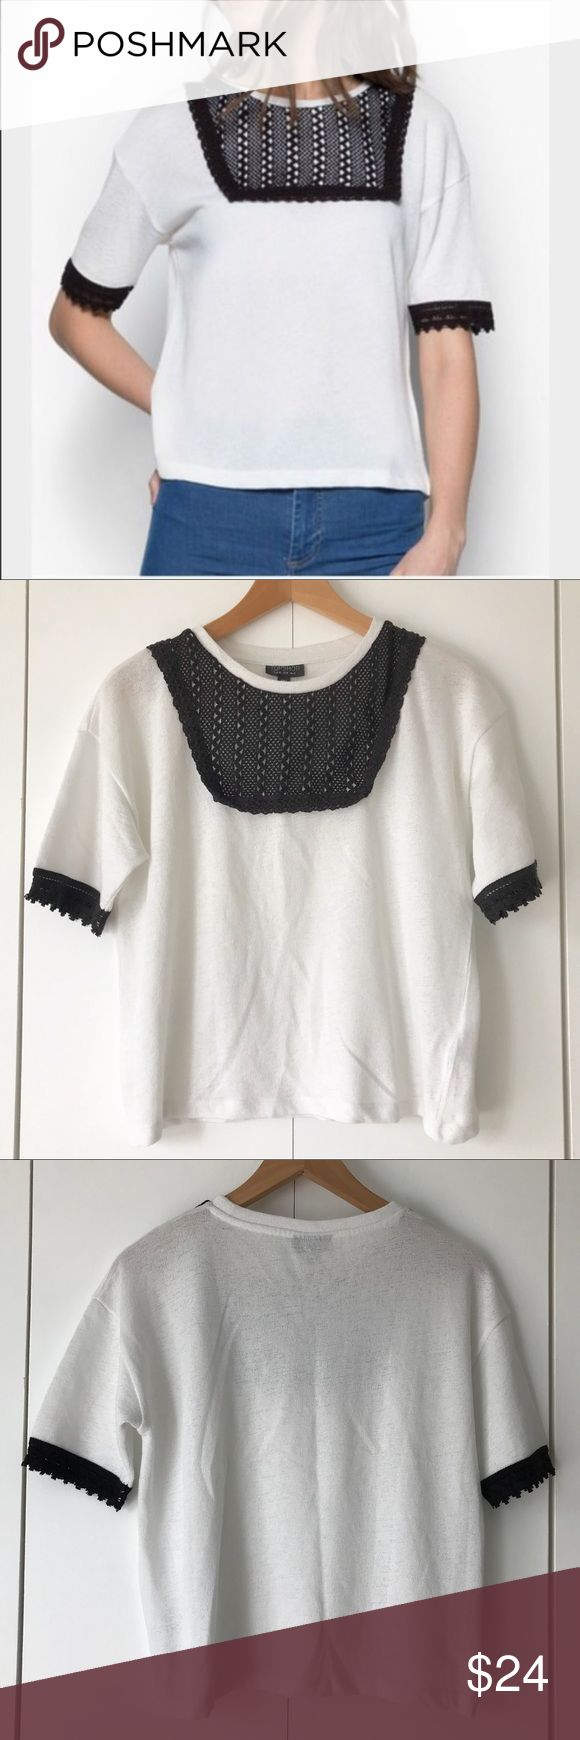 "Topshop Crochet Bib Knit Black White Knit Top Sz 8 Short sleeve top from Topshop in women's size 8. White with black crochet bib. Lightweight knit material. 19"" from armpit to armpit. 13"" from bottom of armpit to bottom of hem. Topshop Tops"